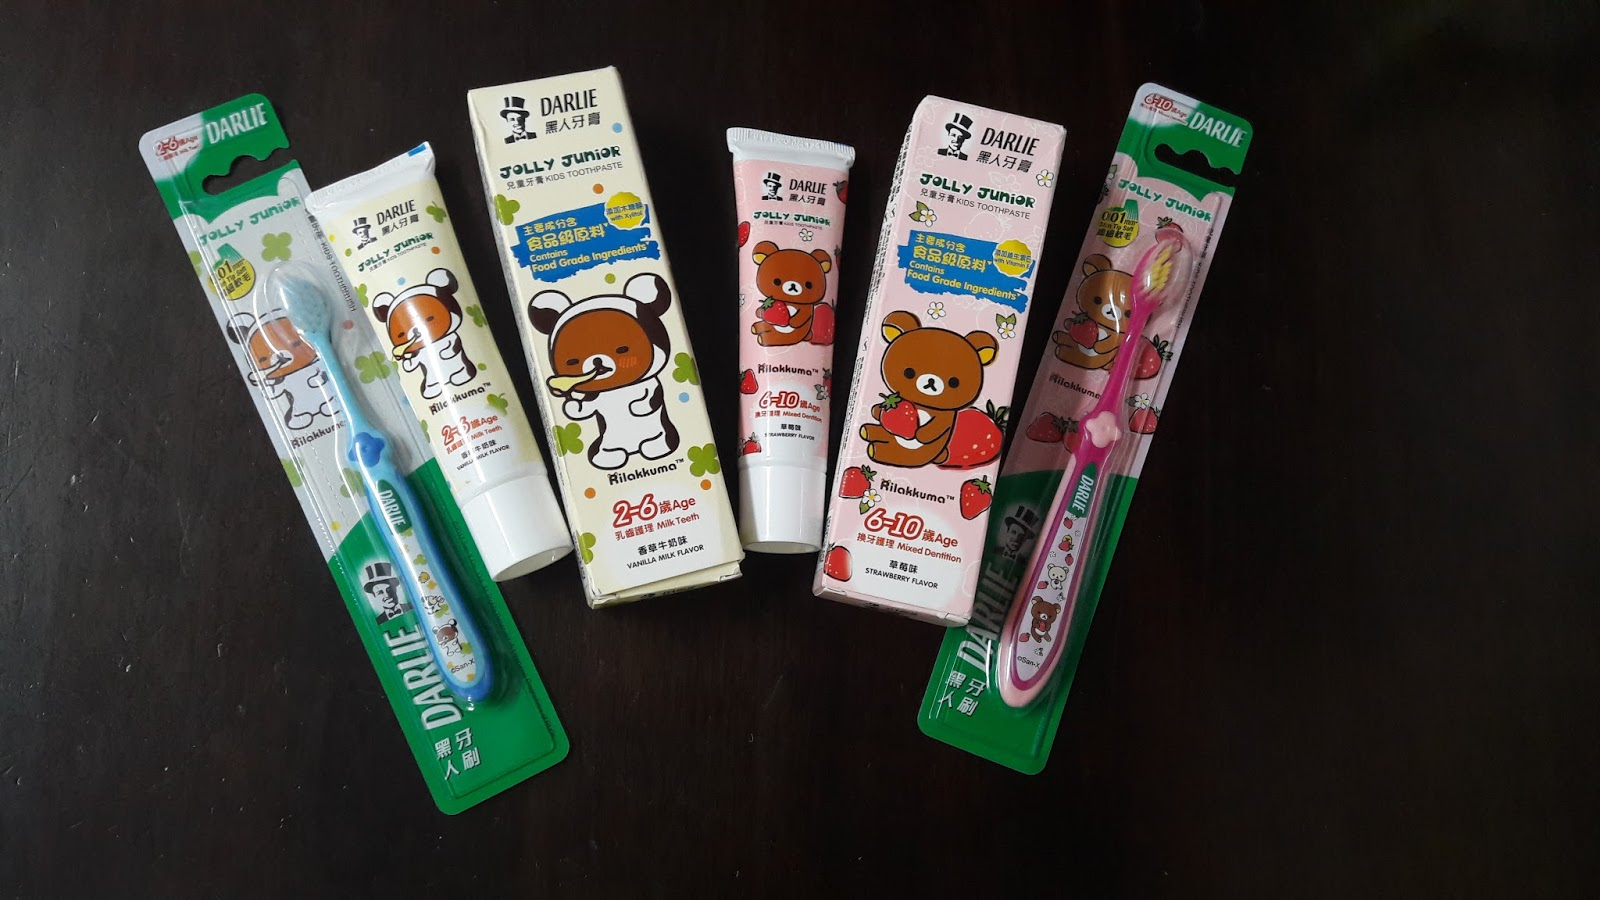 My Blogs Darlie Jolly Junior Toothpaste And Toothbrush Makes After Trying Out The New Toothpastes Toothbrushes They Love Brushing Teeth Everyday Really Like Cute Rilakkuma Packaging